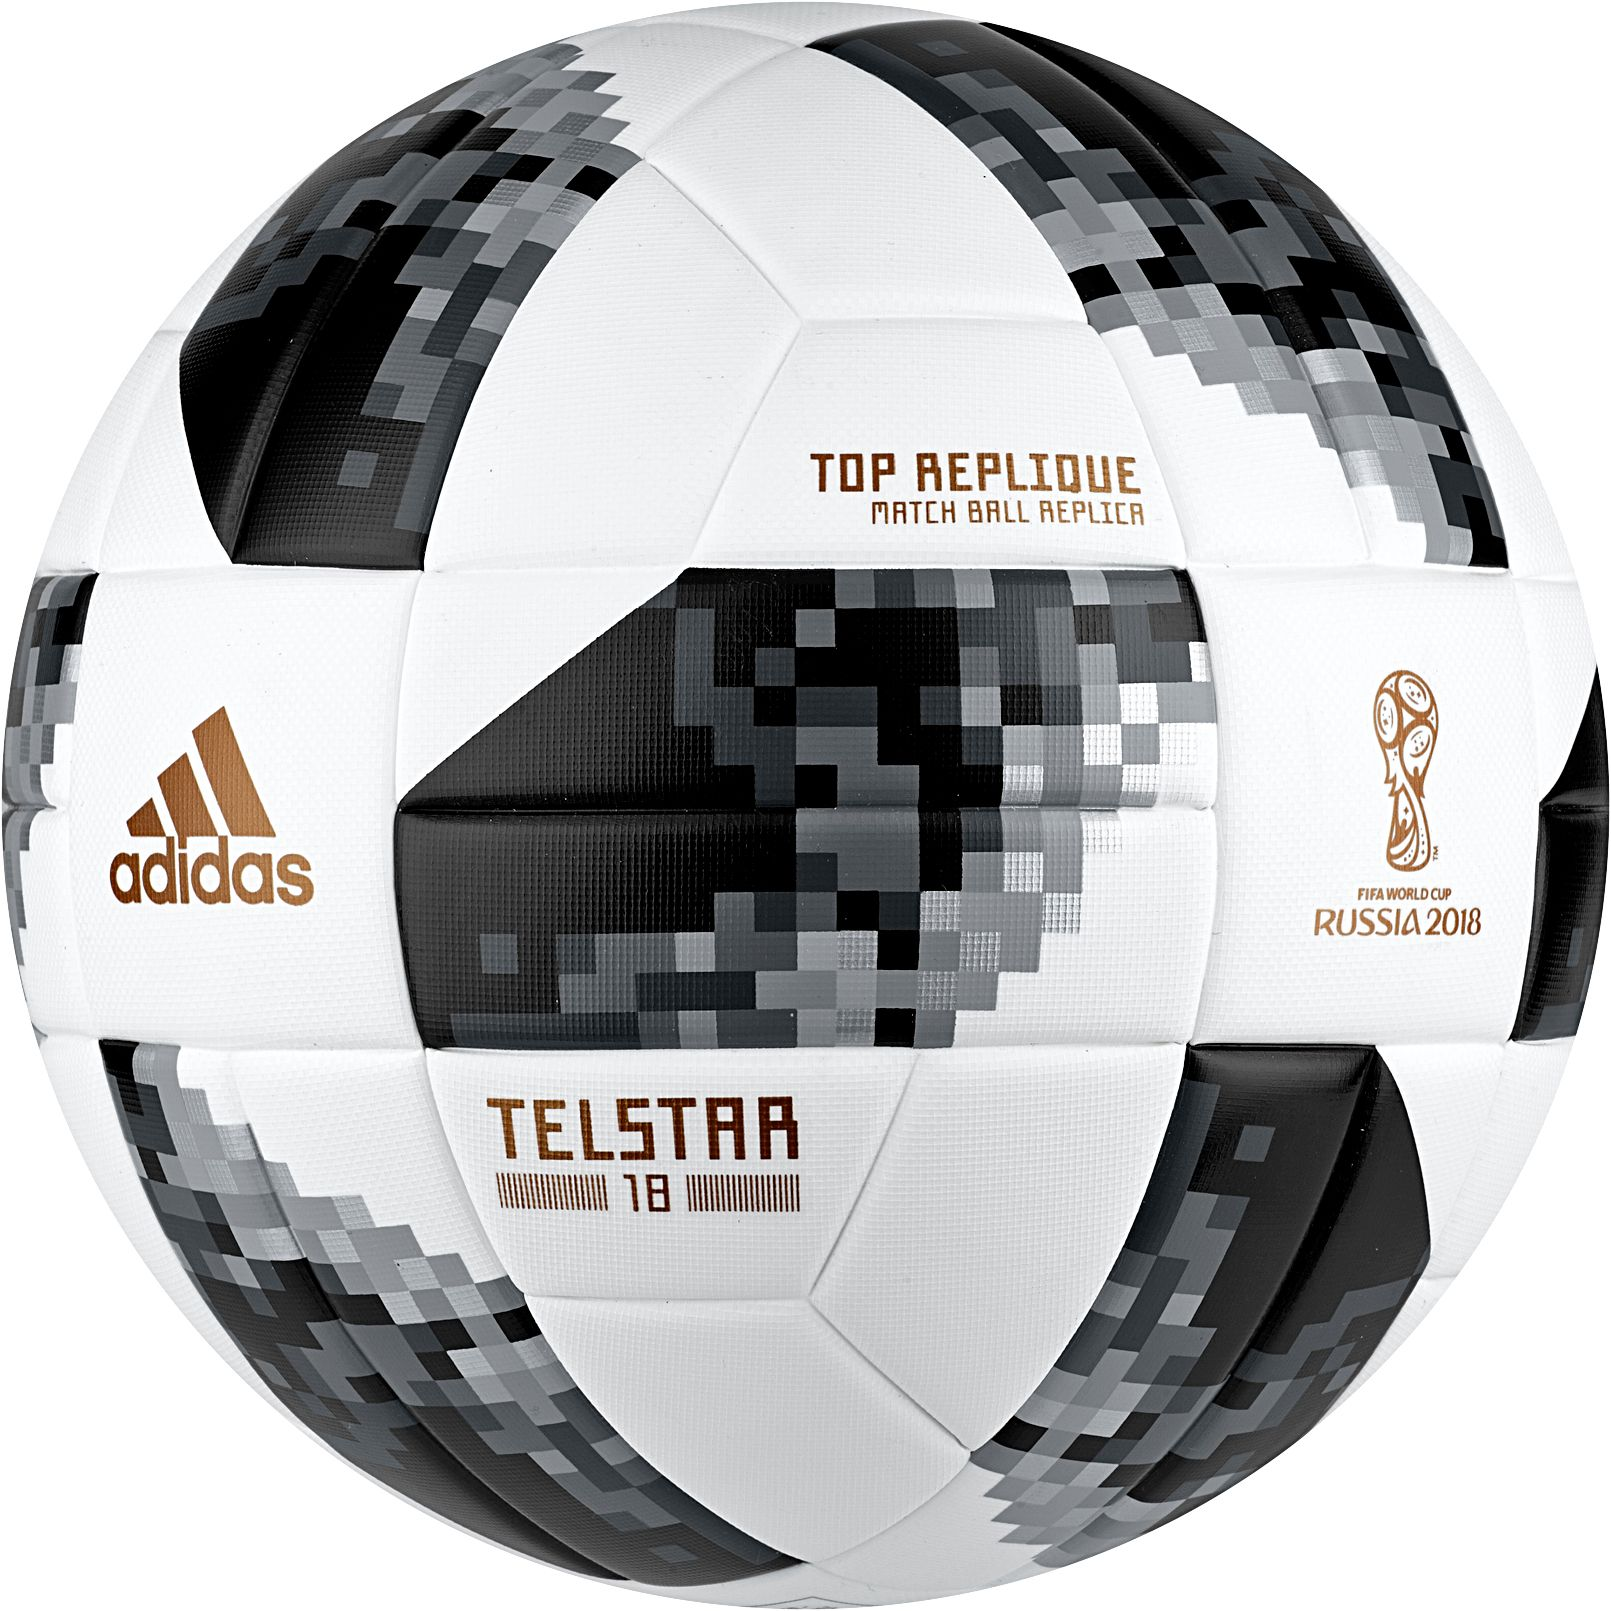 detailed look ee908 d2e01 adidas 2018 Fifa World Cup Russia Telstar Top Replique Soccer Ball, White